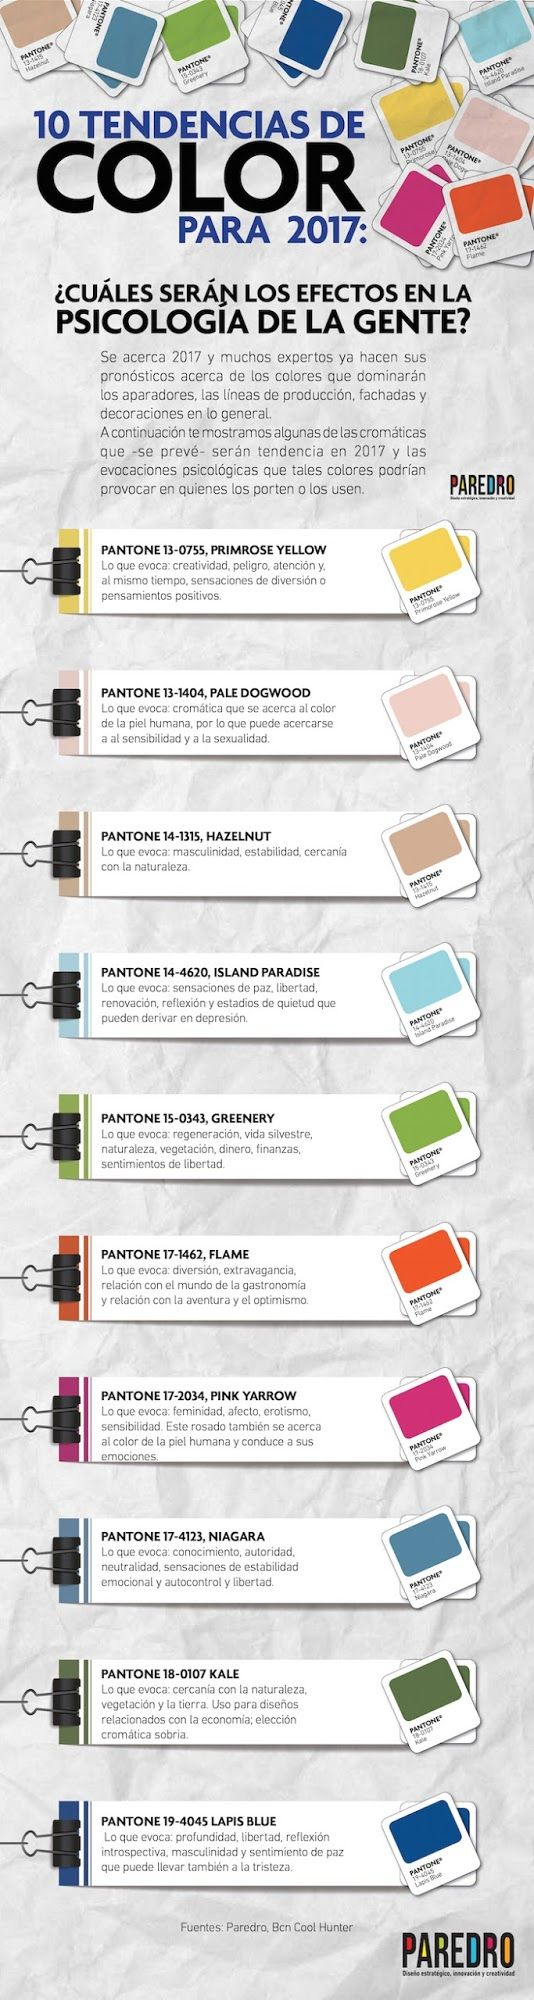 Top 10 de tendencias de color para el 2017 #Infografia #Infographic #Design - UHE Blog